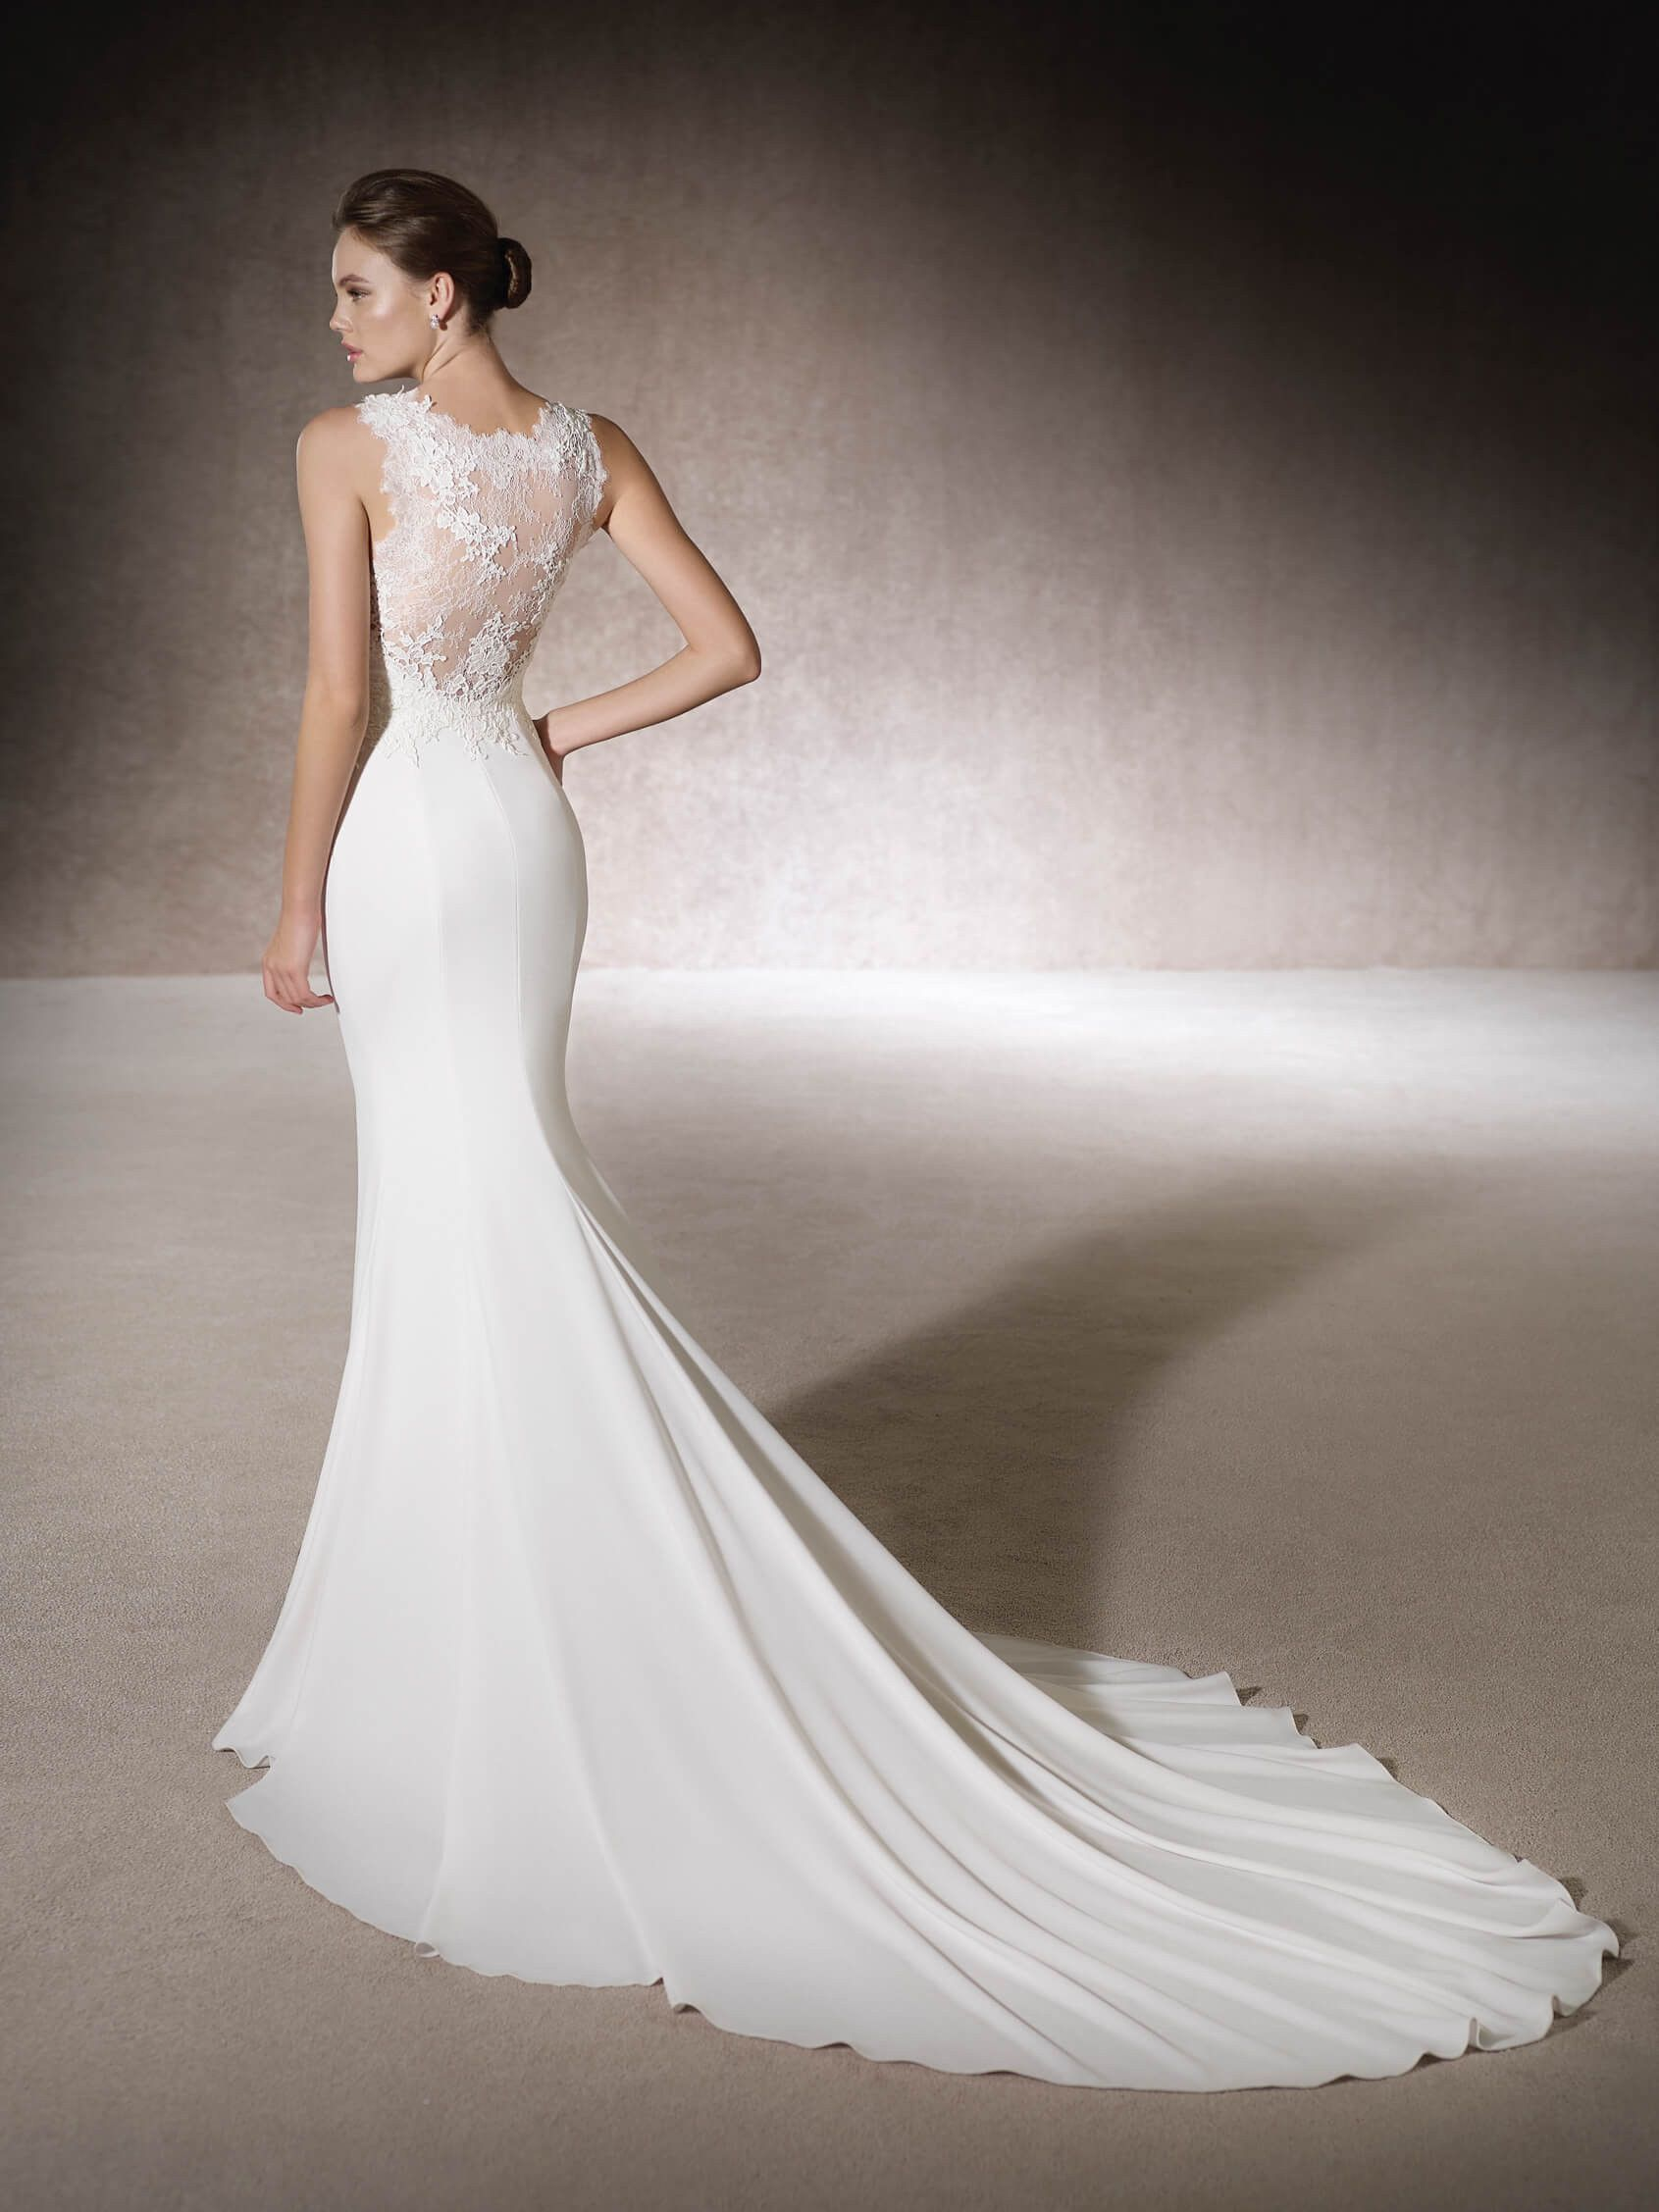 Mermaid wedding dress mariel wedding dress pinterest mermaid